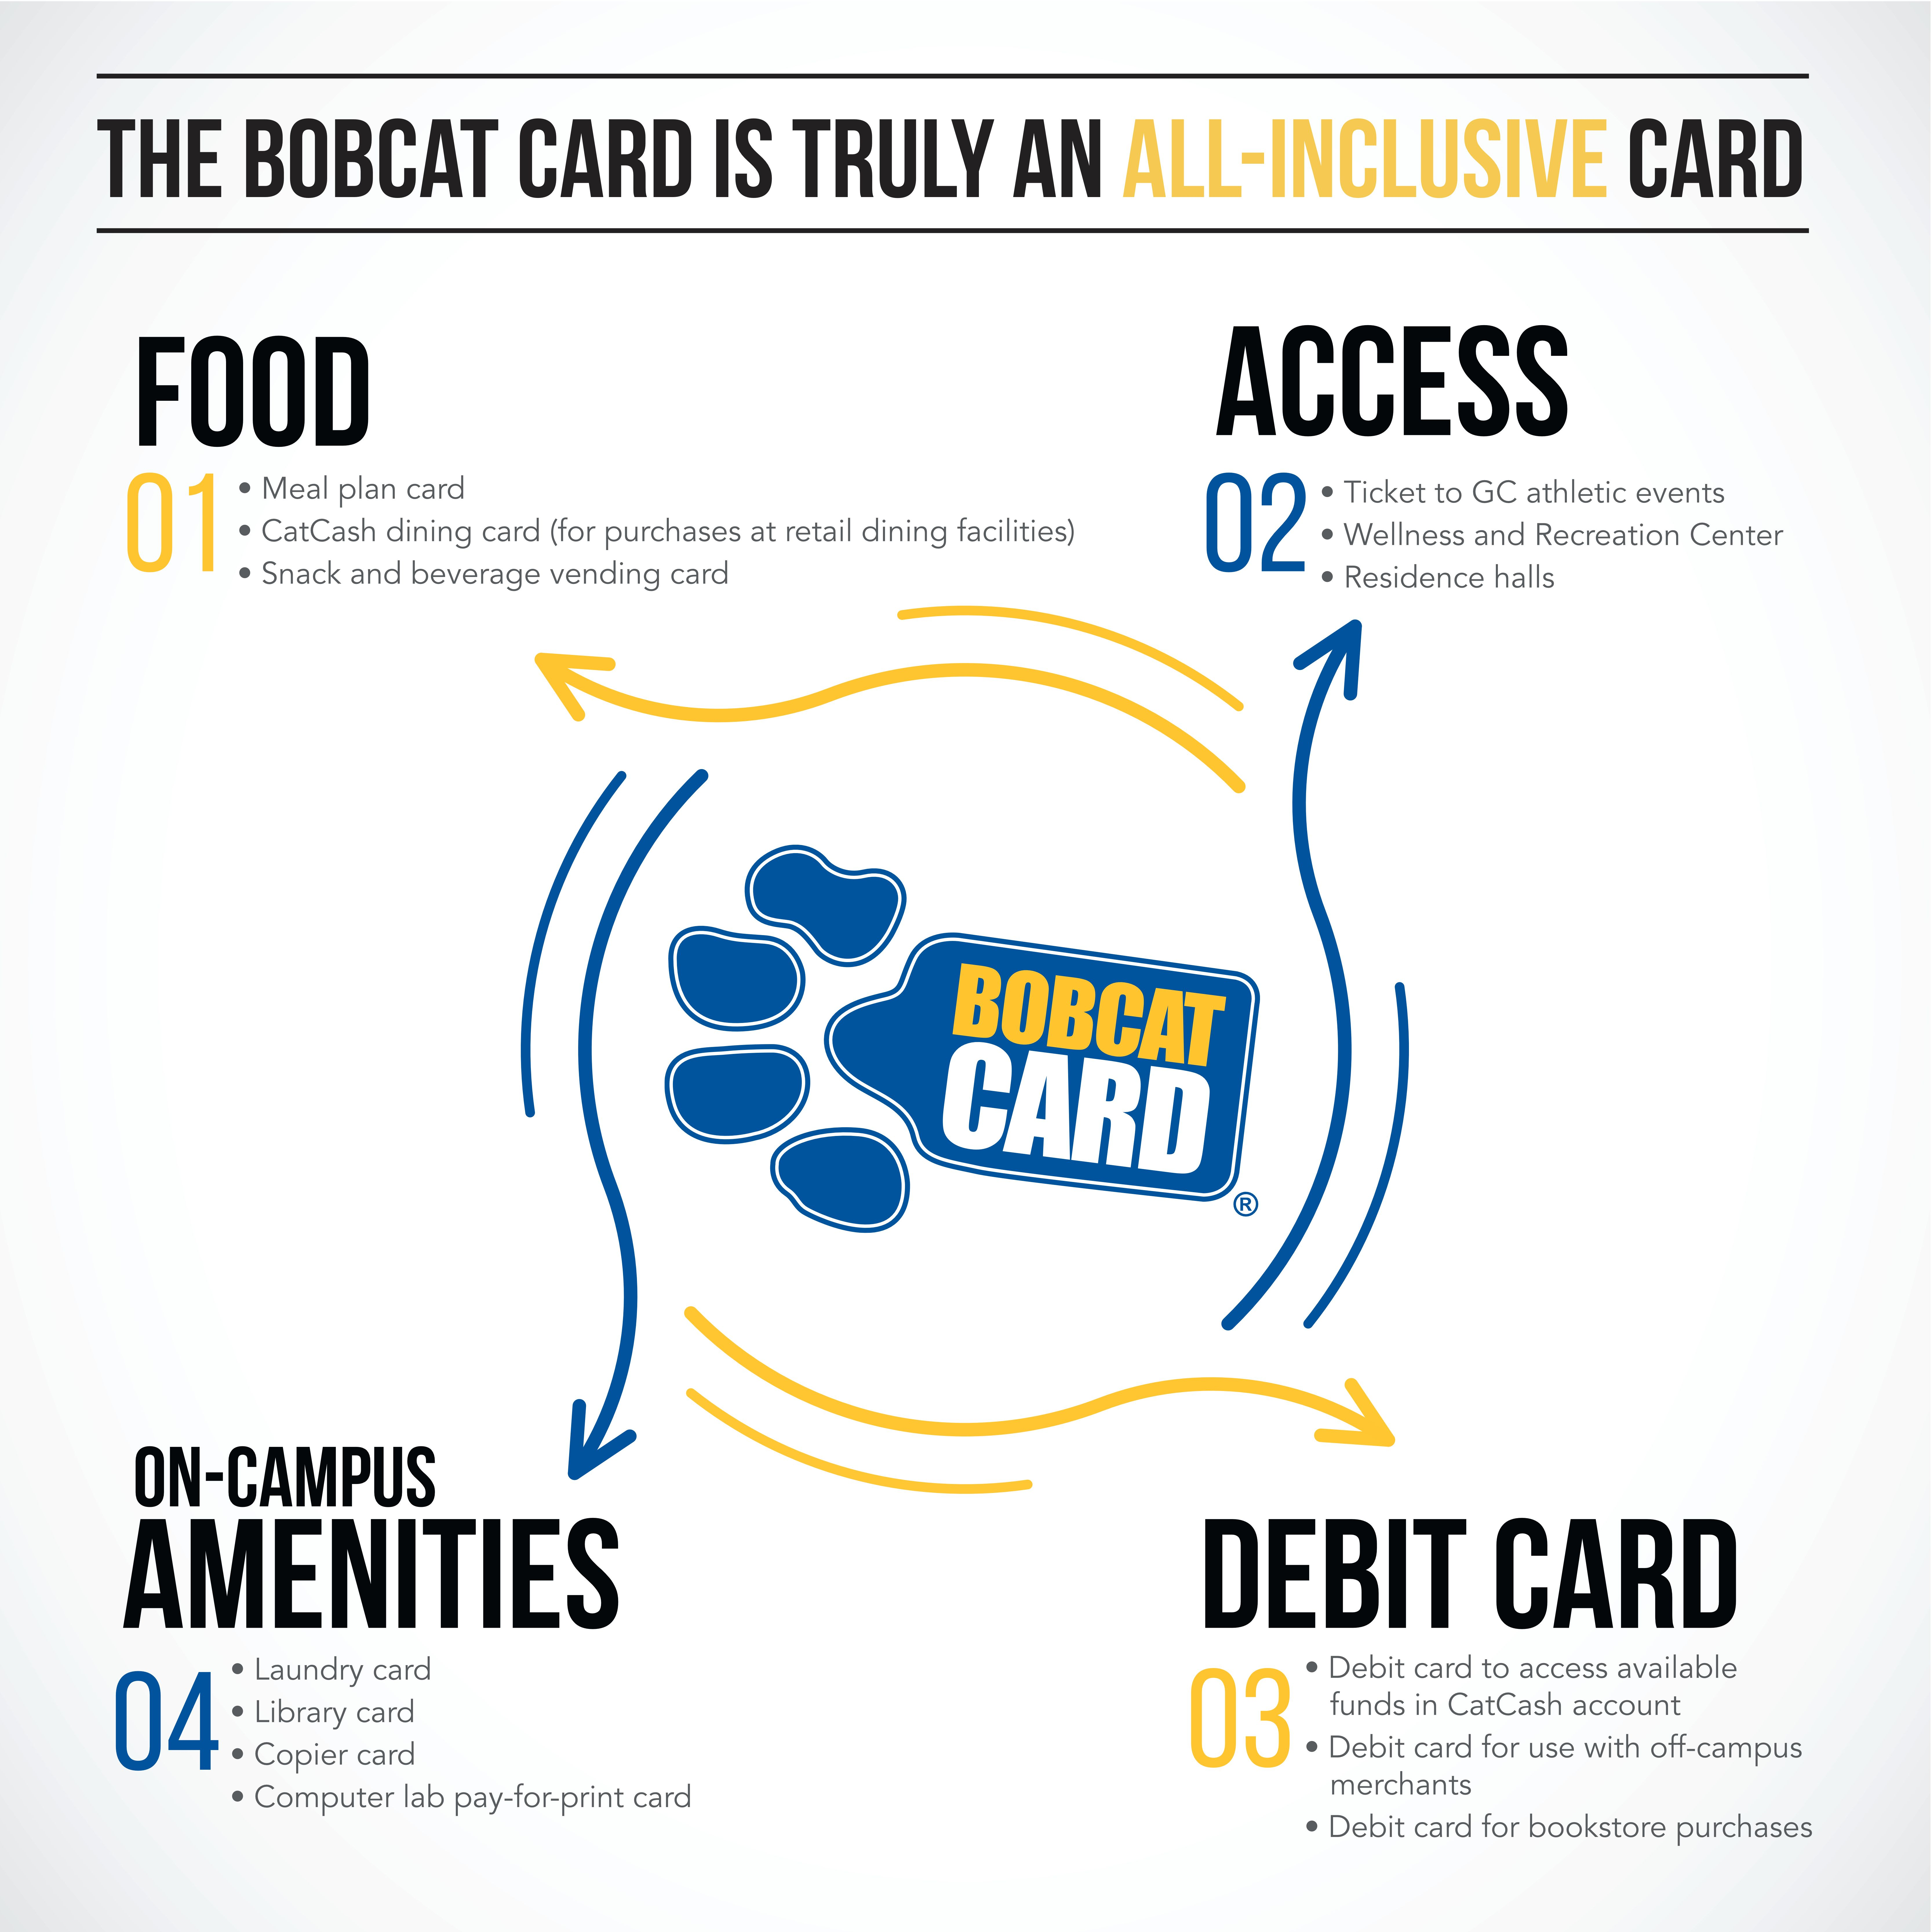 The Bobcat Card is truly an all-inclusive card, serving as your:  Debit card to access available funds in a CatCash Account Meal plan card CatCash dining card (for purchases at retail dining facilities) Library card Access card to Wellness and Recreation Center Access card to residence halls Ticket to GC athletic events Laundry card Snack and beverage vending card Copier card Bookstore debit card Computer lab pay-for-print card Debit card for use with off-campus merchants